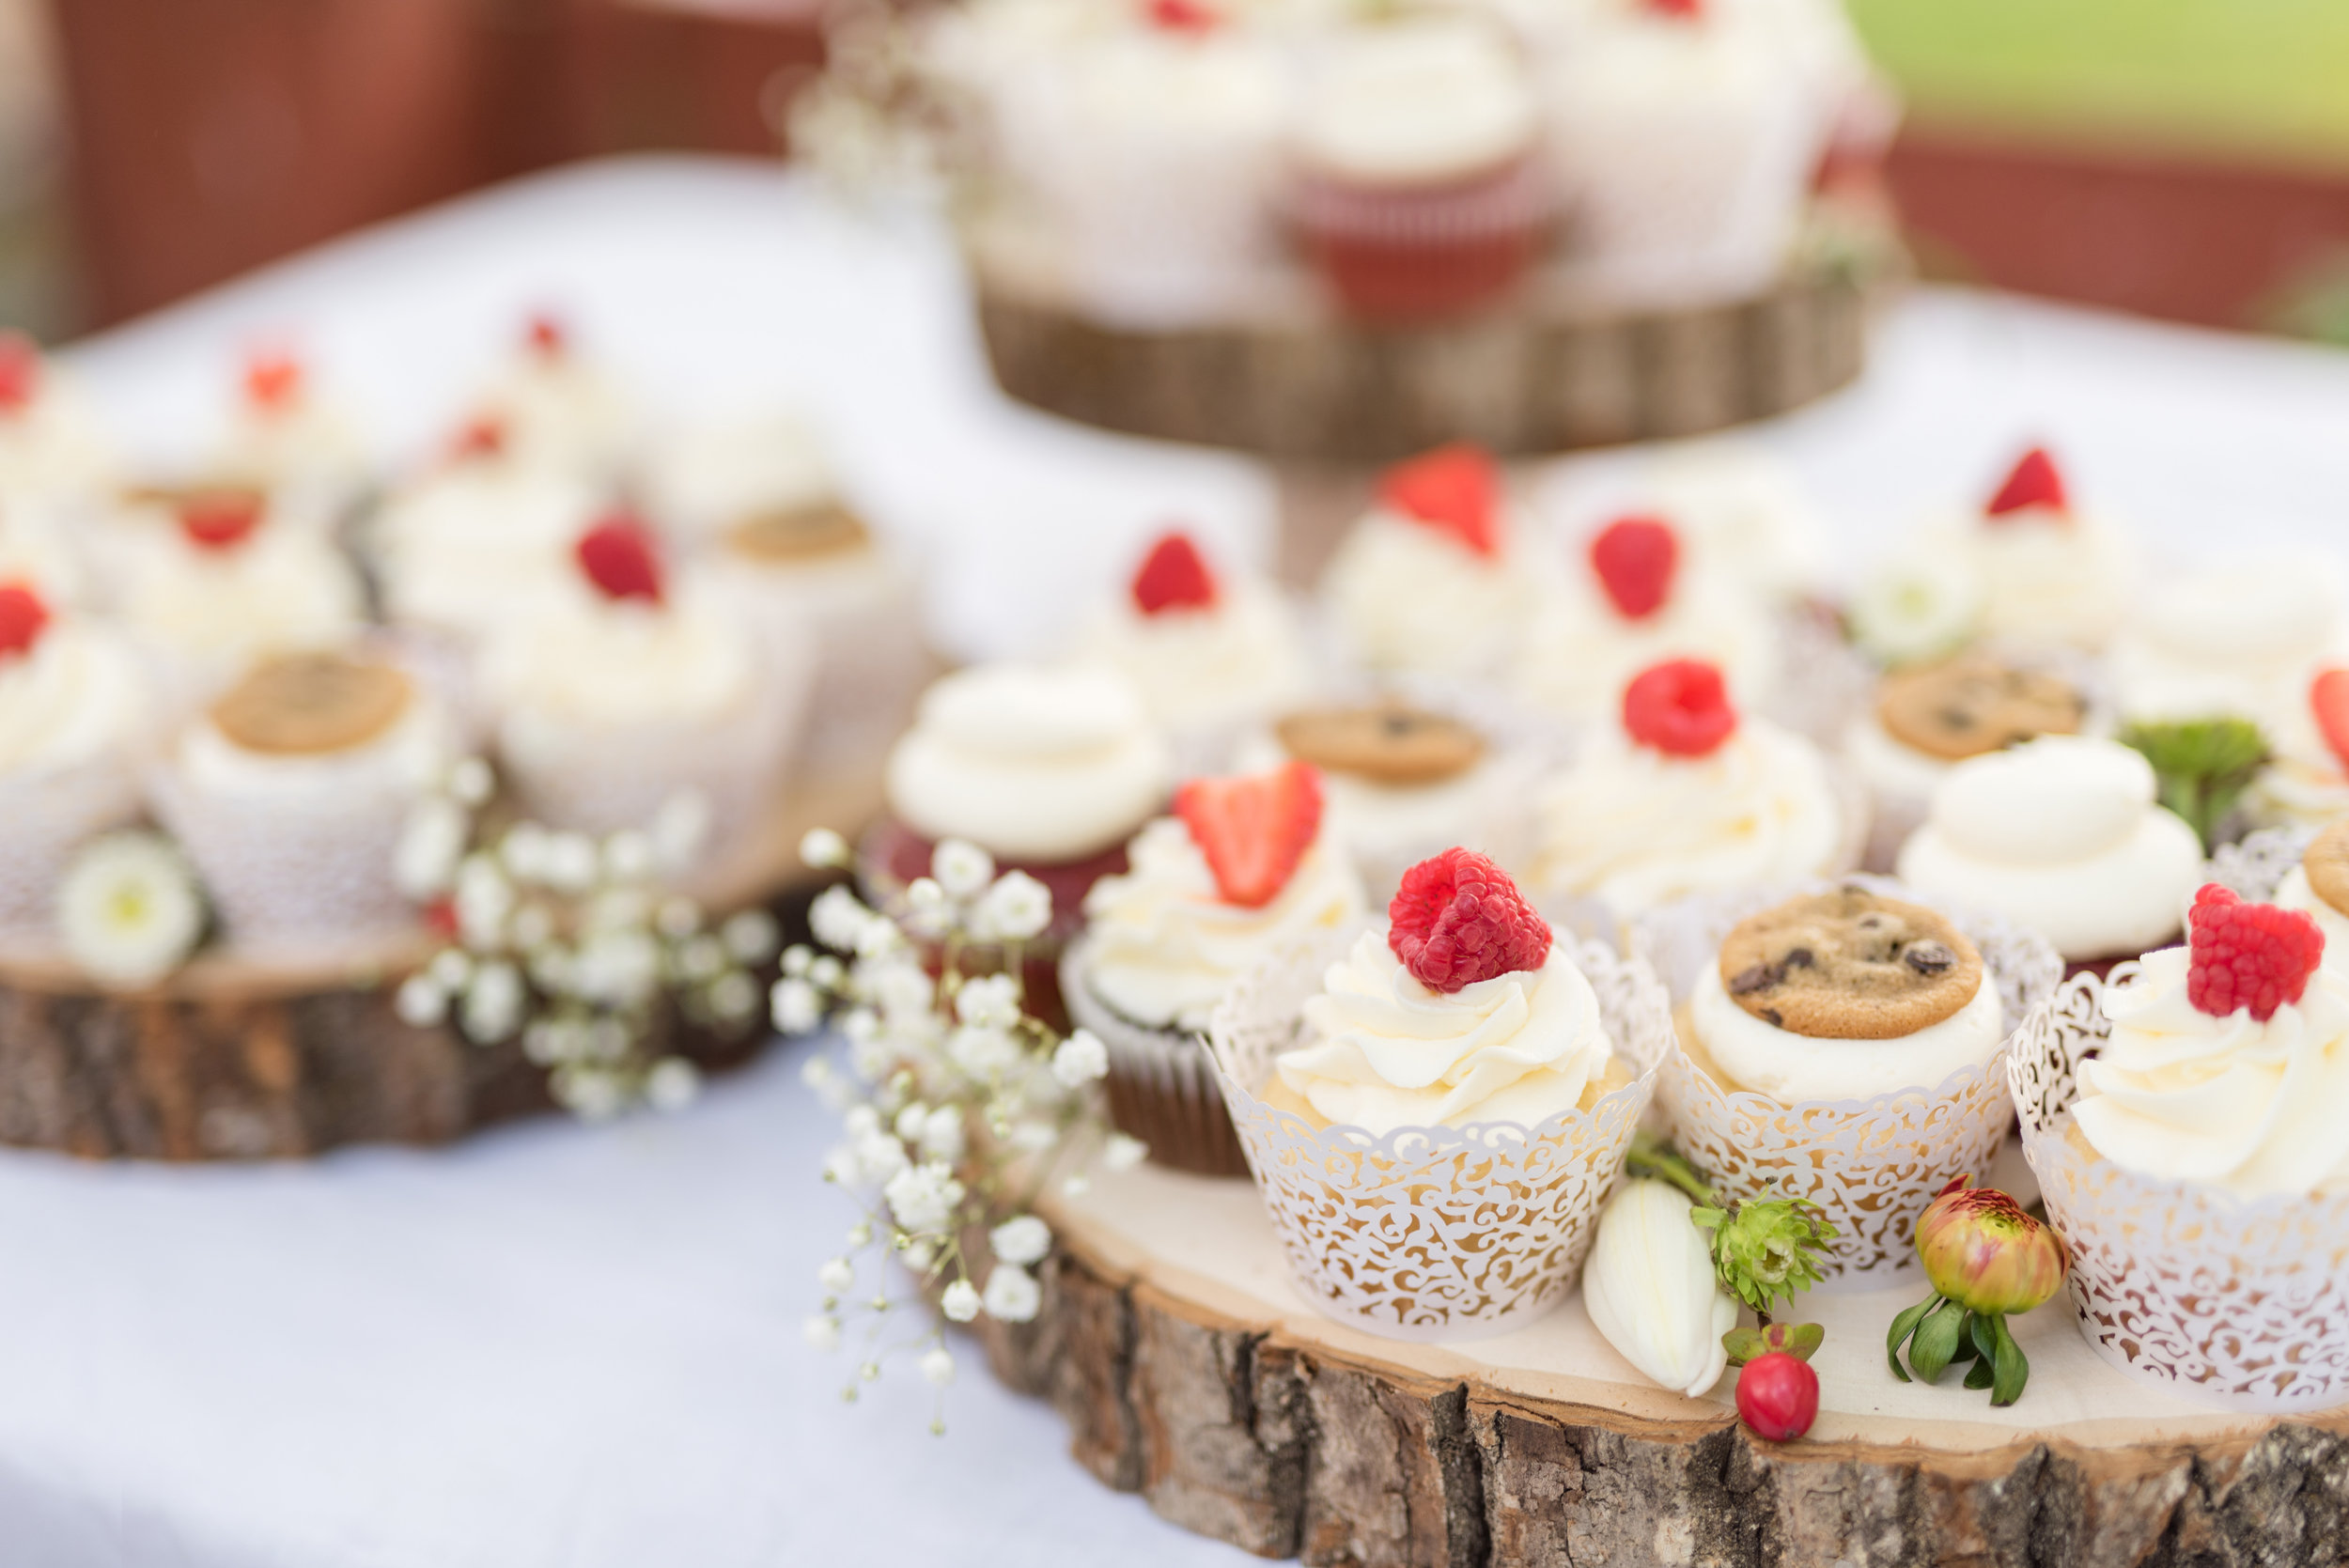 Cupcakes - We can theme your cupcakes around your event and cake design. They are beautiful and taste as good as they look! Our cupcakes come in standard or mini sizes. Contact us for details!